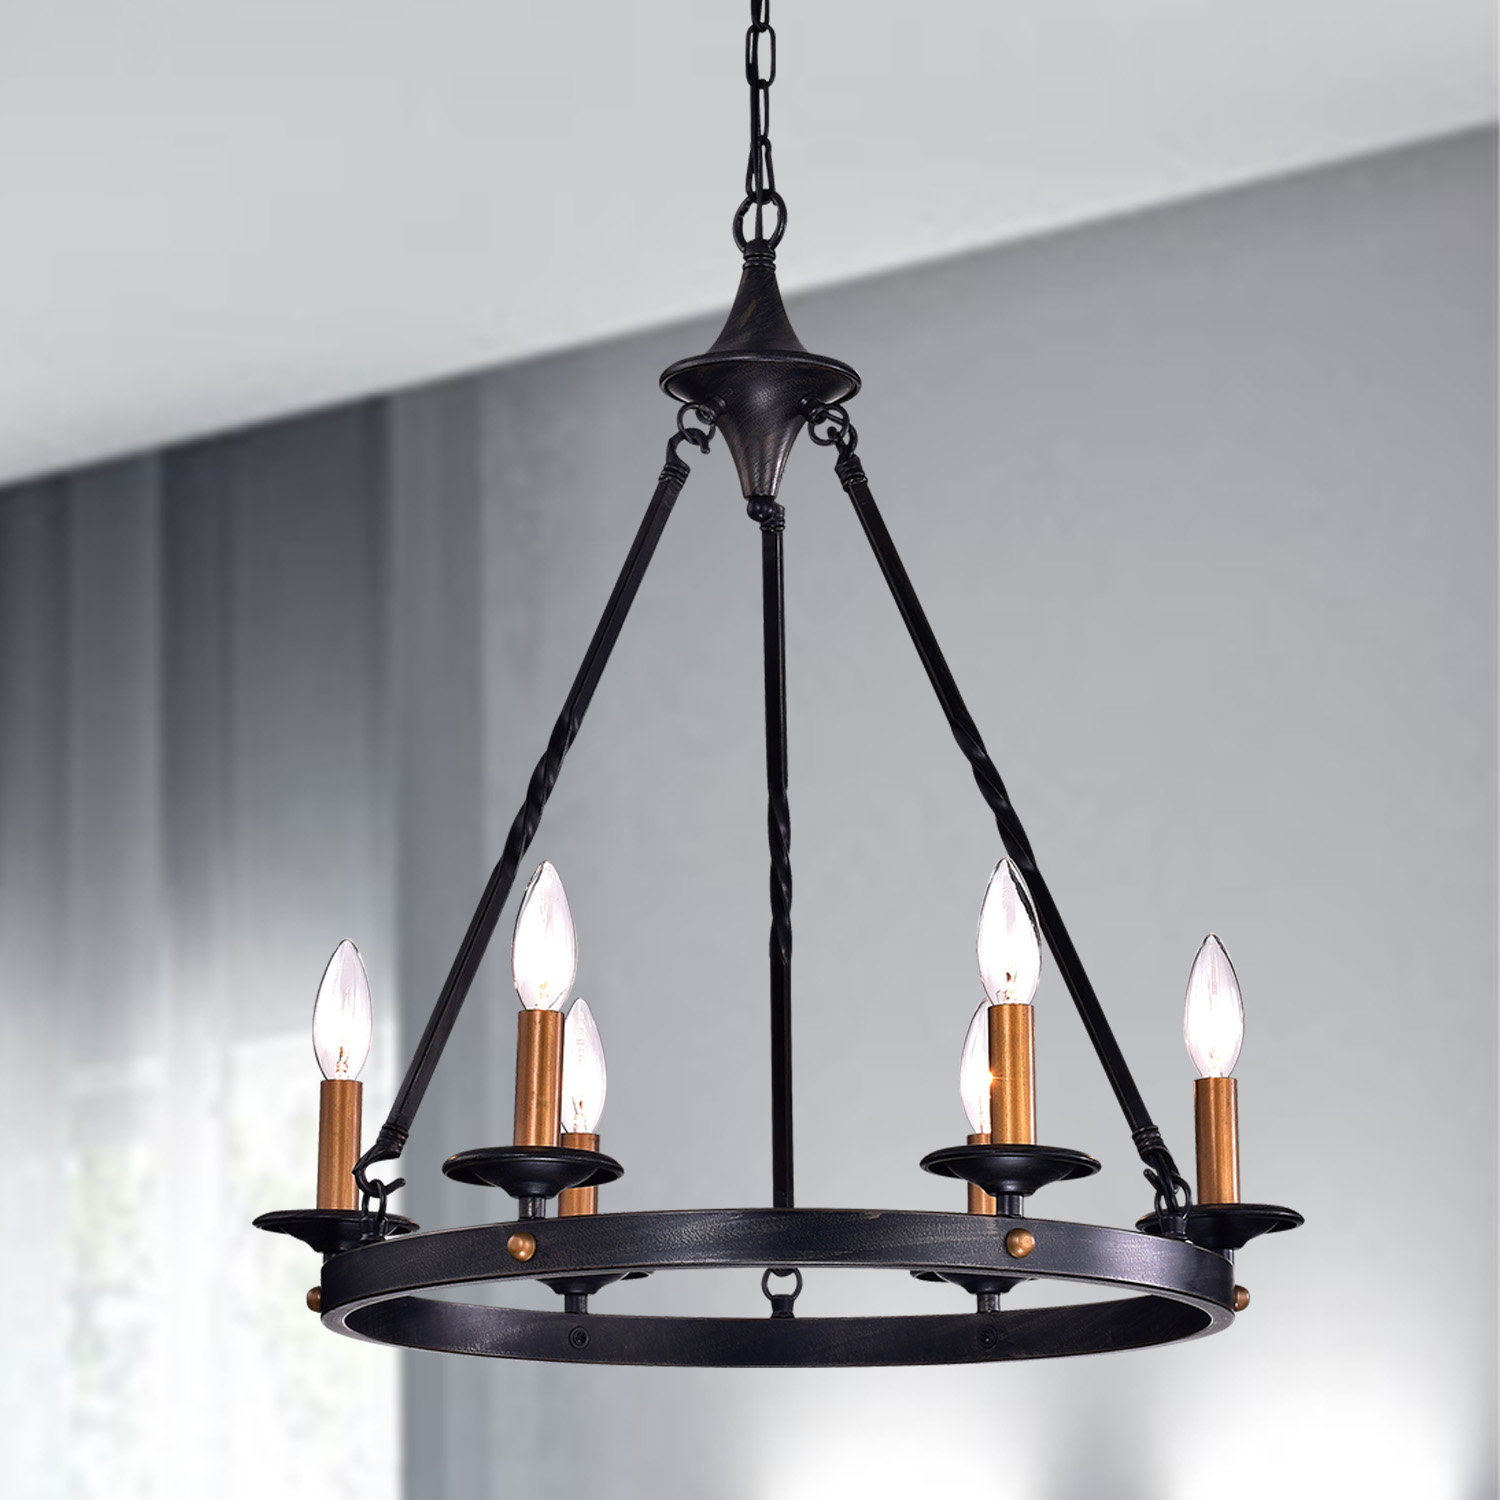 Brian 6 Light Wagon Wheel Chandelier Regarding Rockland 4 Light Geometric Pendants (View 11 of 30)